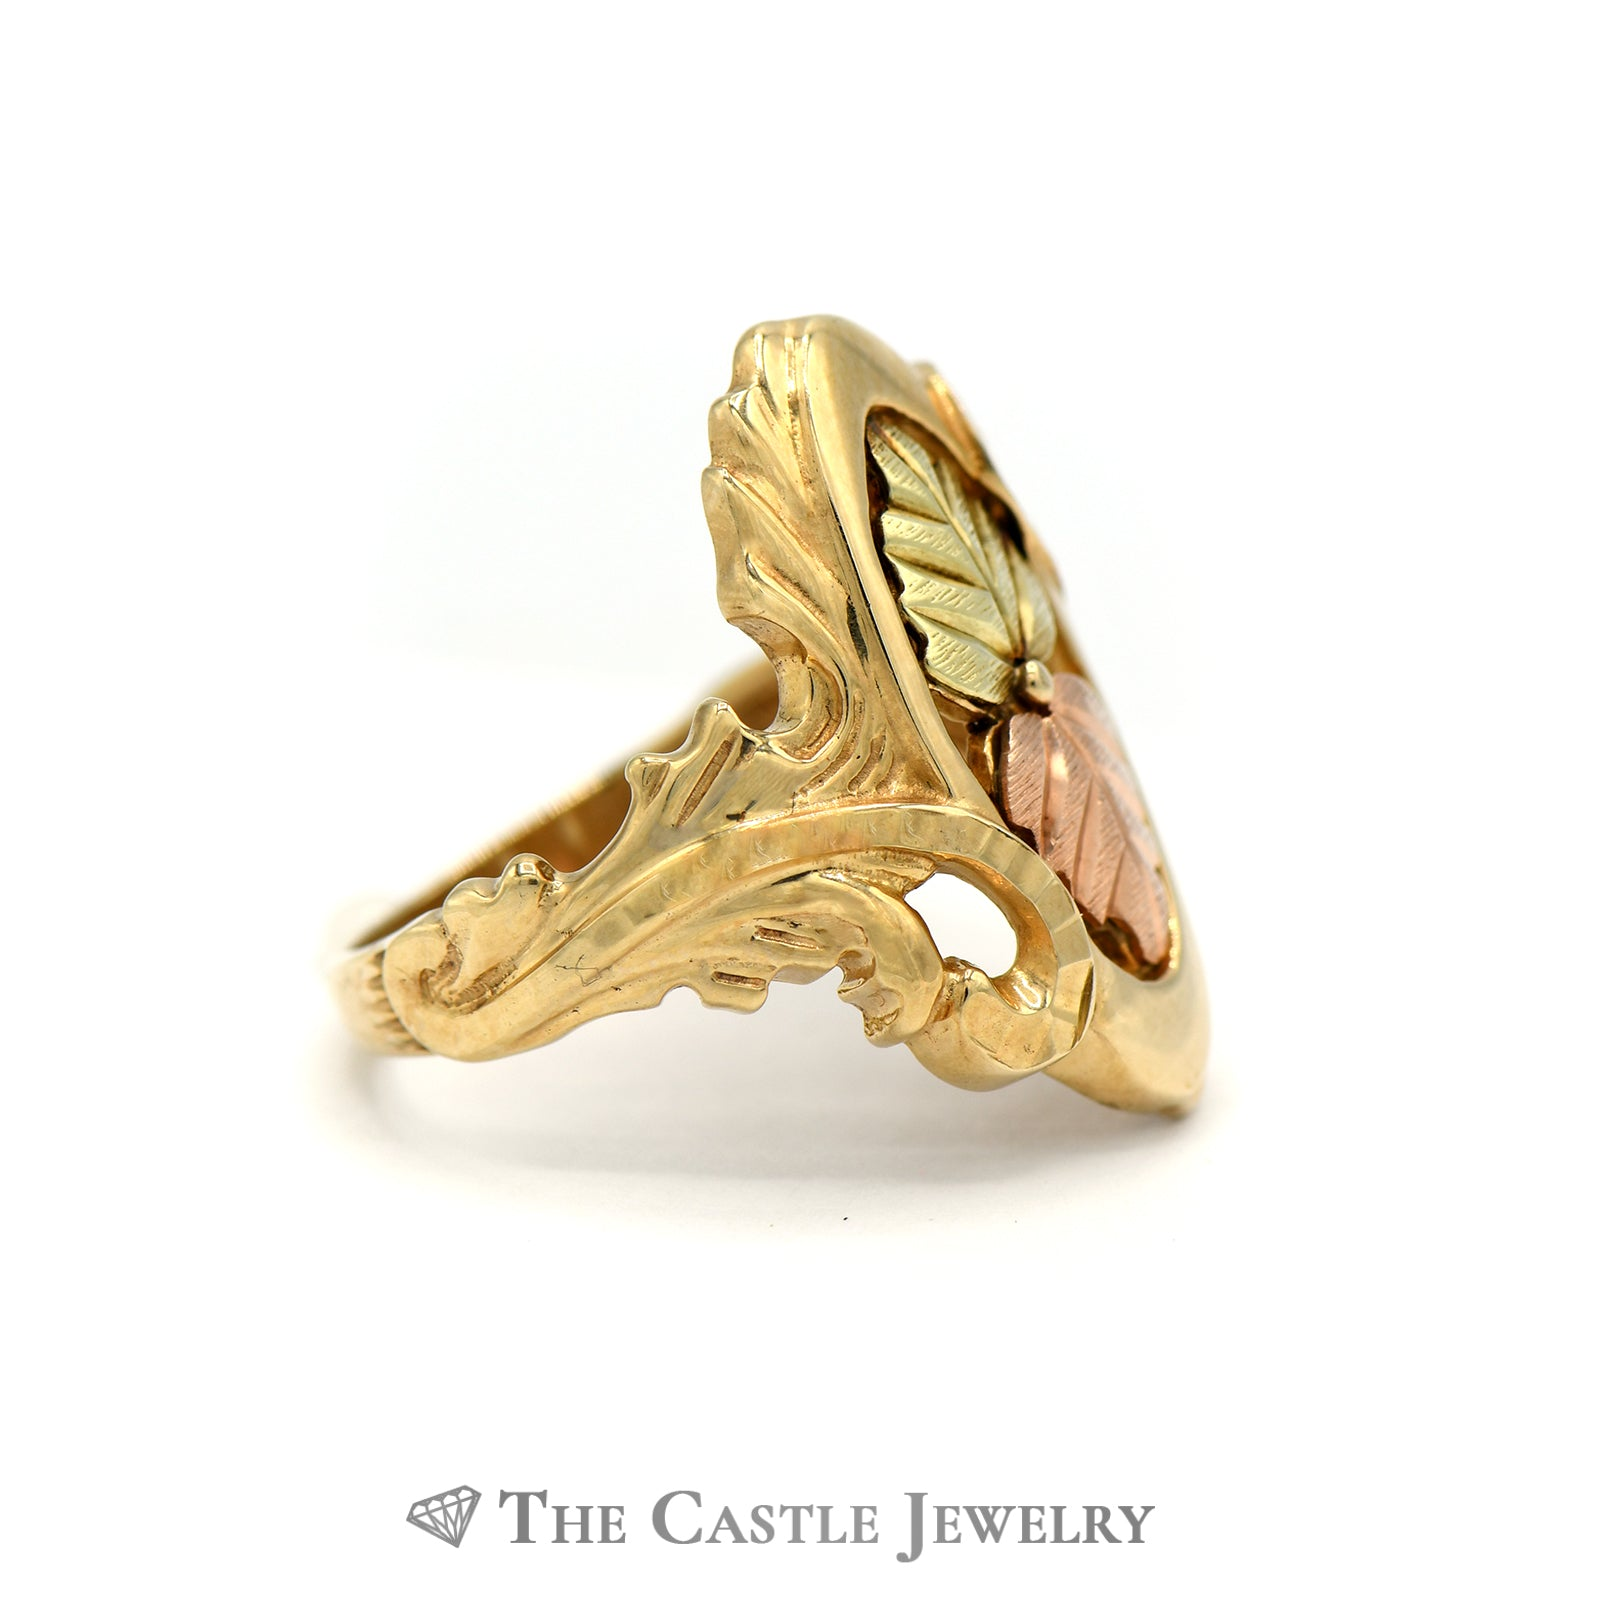 Charming Gold Leaf oval Design Ring Crafted in 10k Tri Gold-2